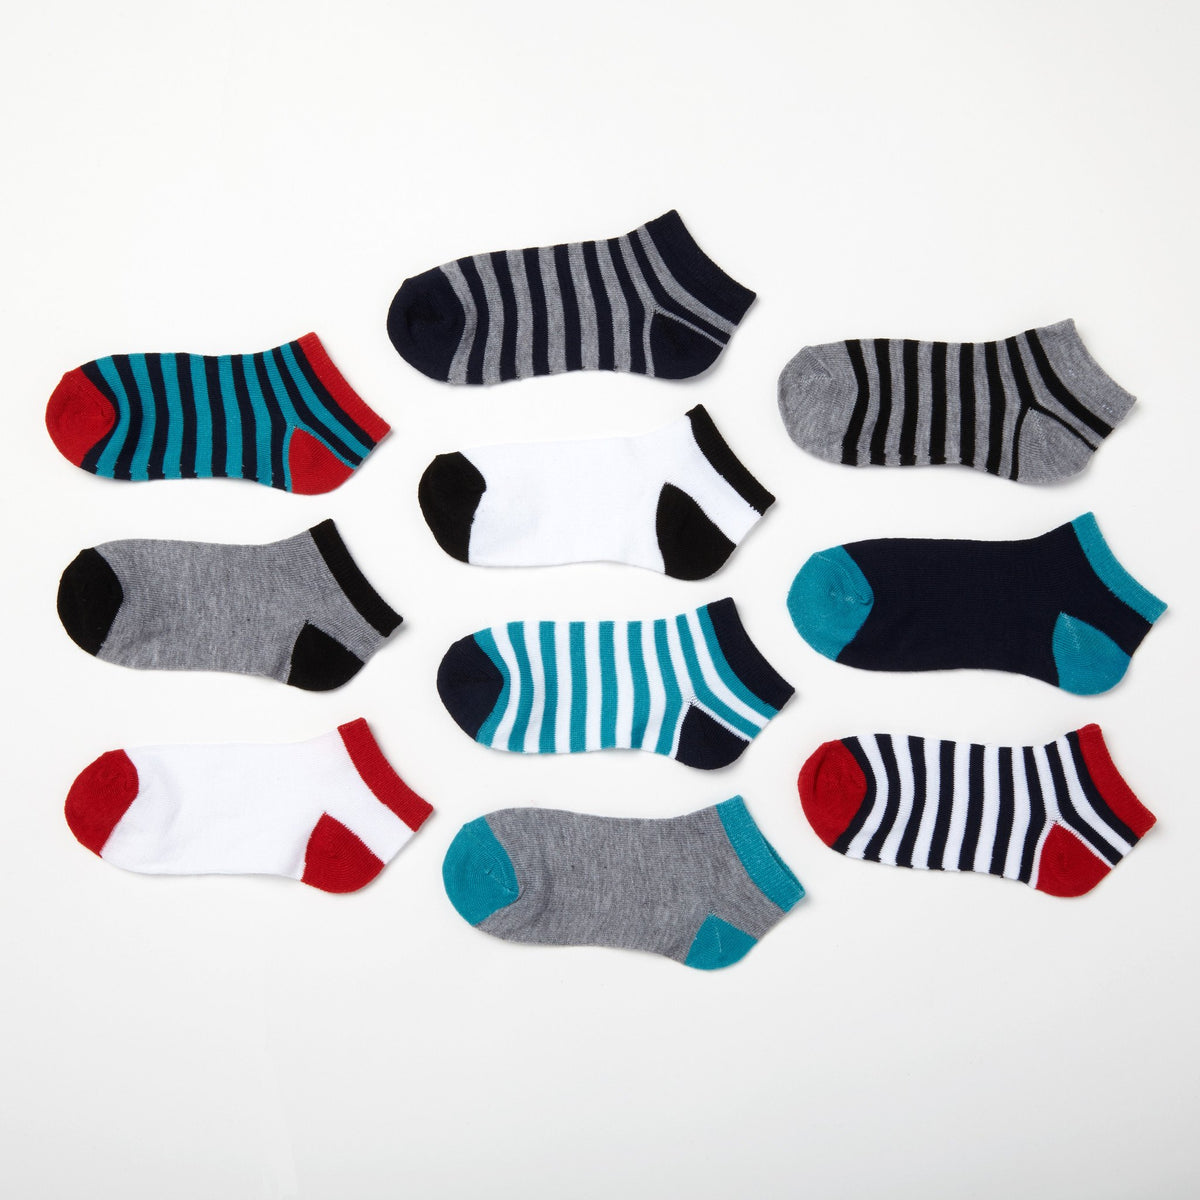 Boys' Solids + Stripes 10-Pack Low Cut Socks 6-8.5